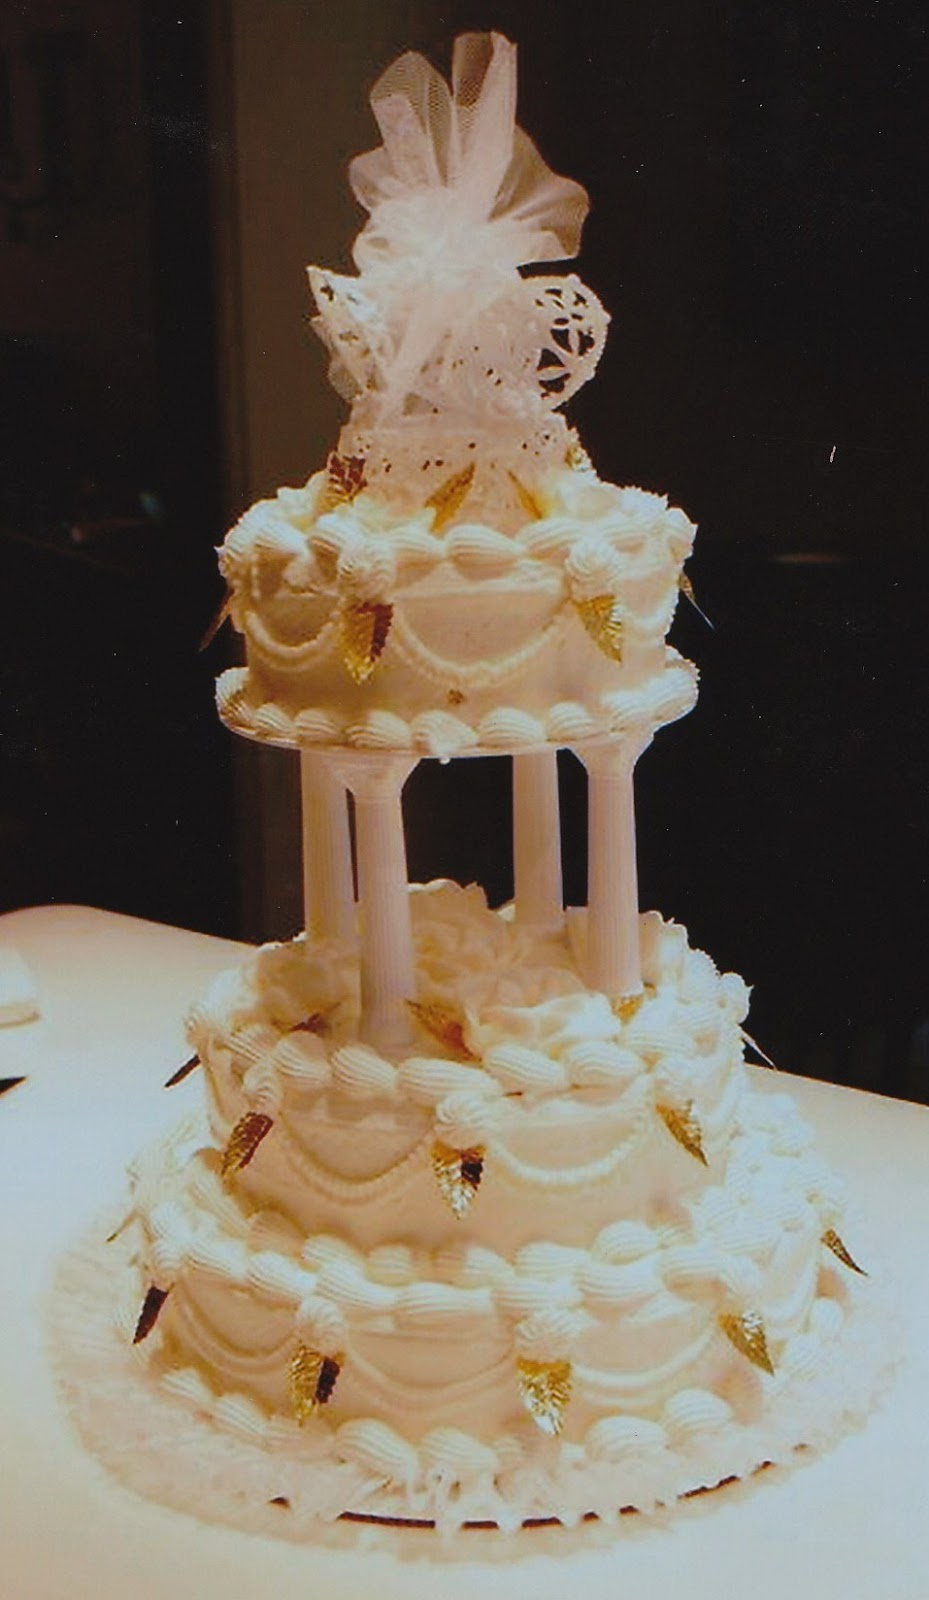 original wedding cake frosting haegele s bakery philadelphia german bakery weddings 18062